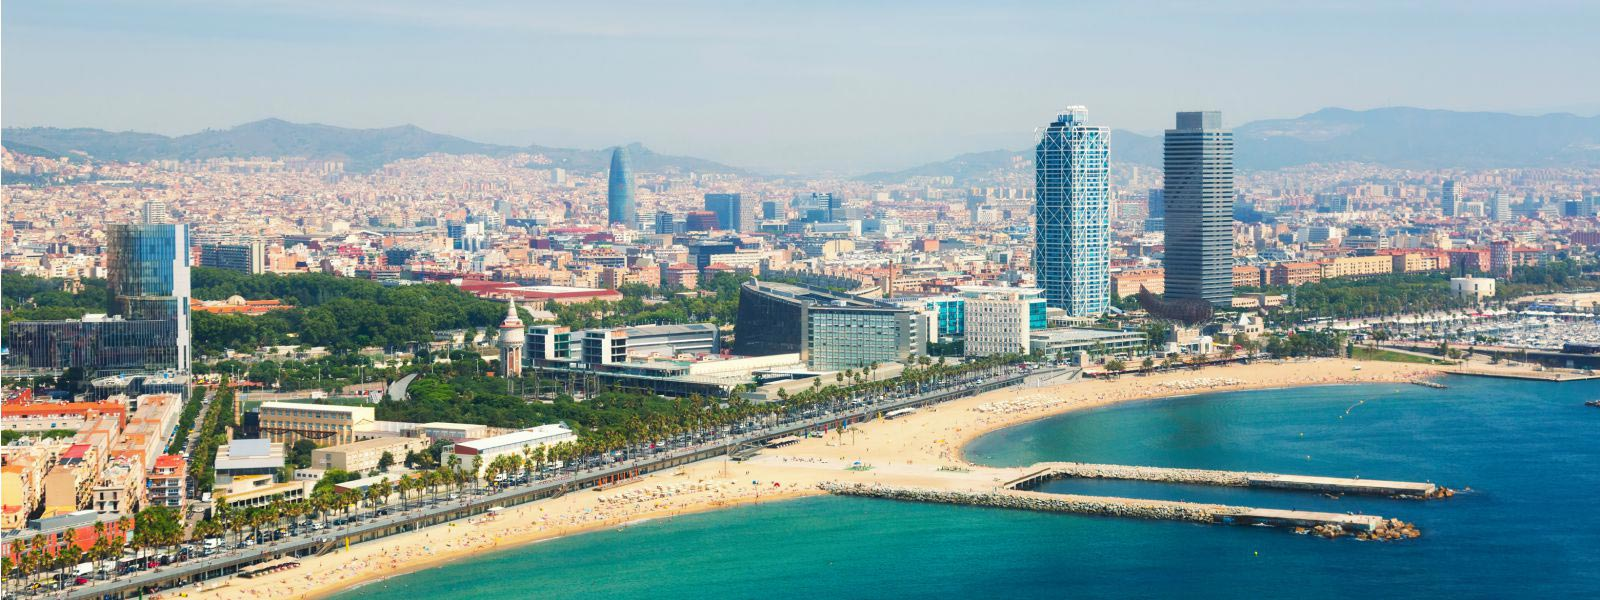 Voli e voli low cost barcellona goeuro for Appartamenti barcellona low cost